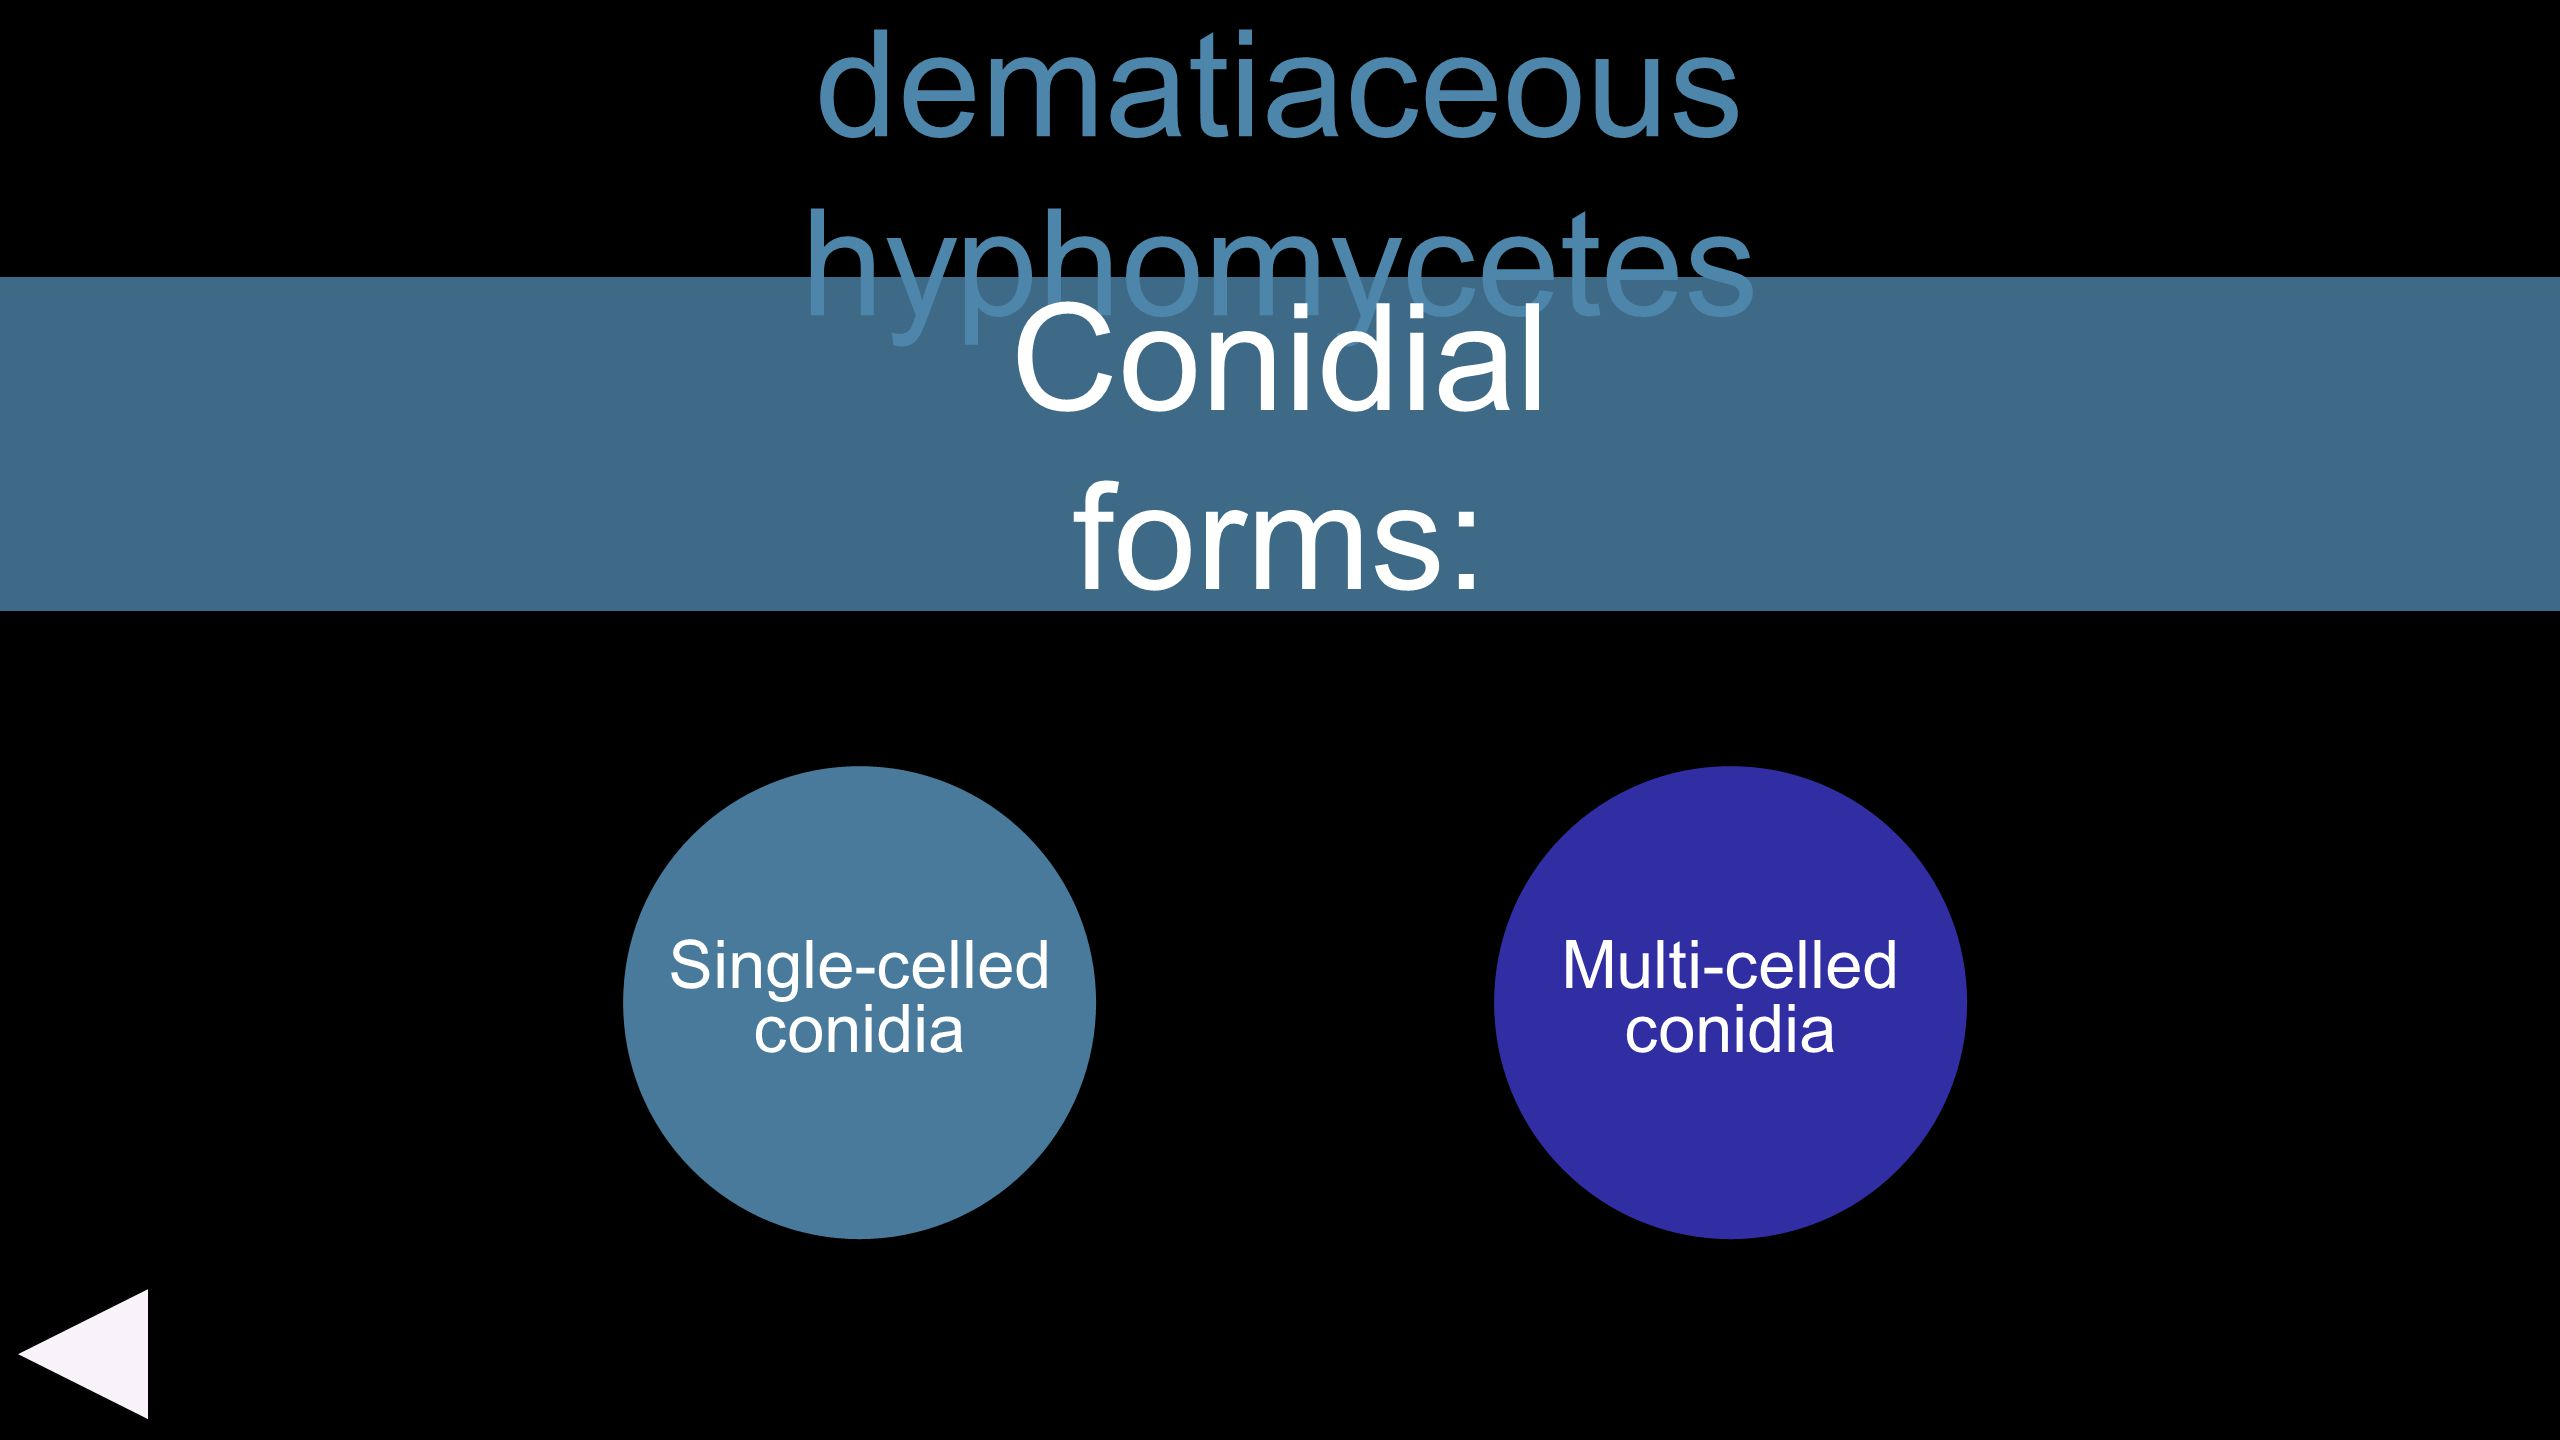 dematiaceous hyphomycetes Single-celled conidia Conidial forms: Multi-celled conidia